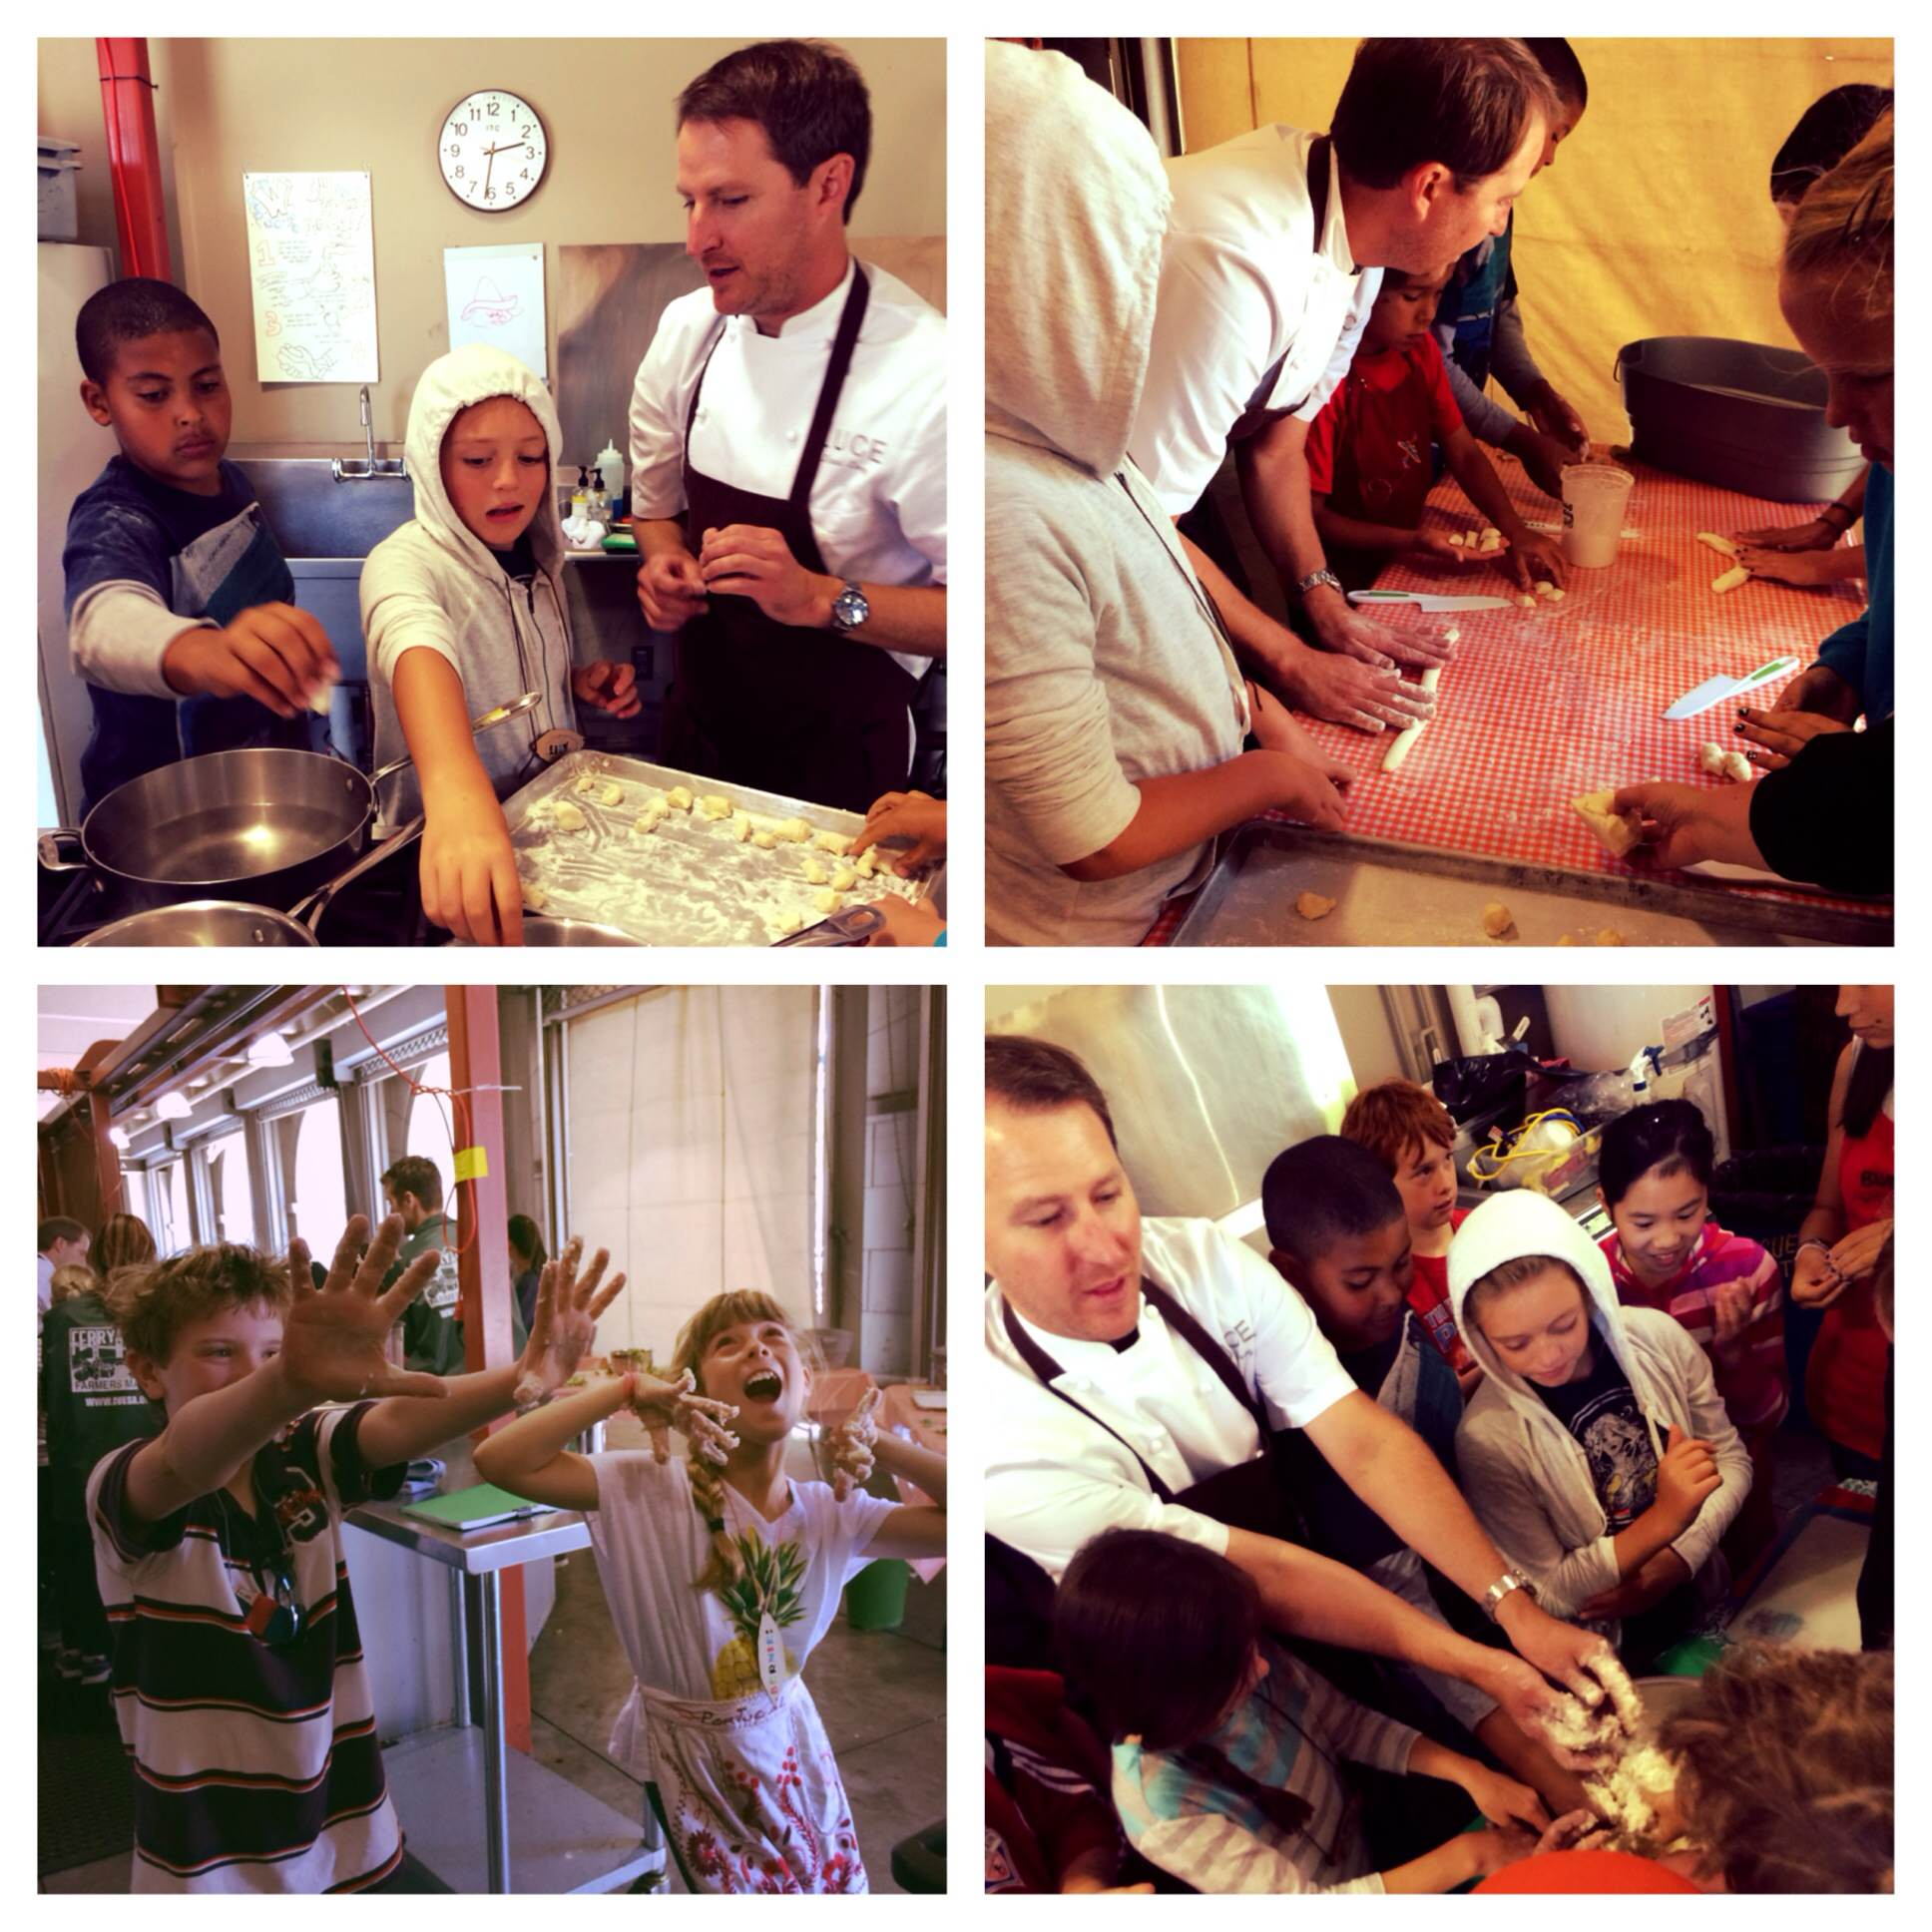 Chef Daniel got messy with the campers while making homemade gnocchi.